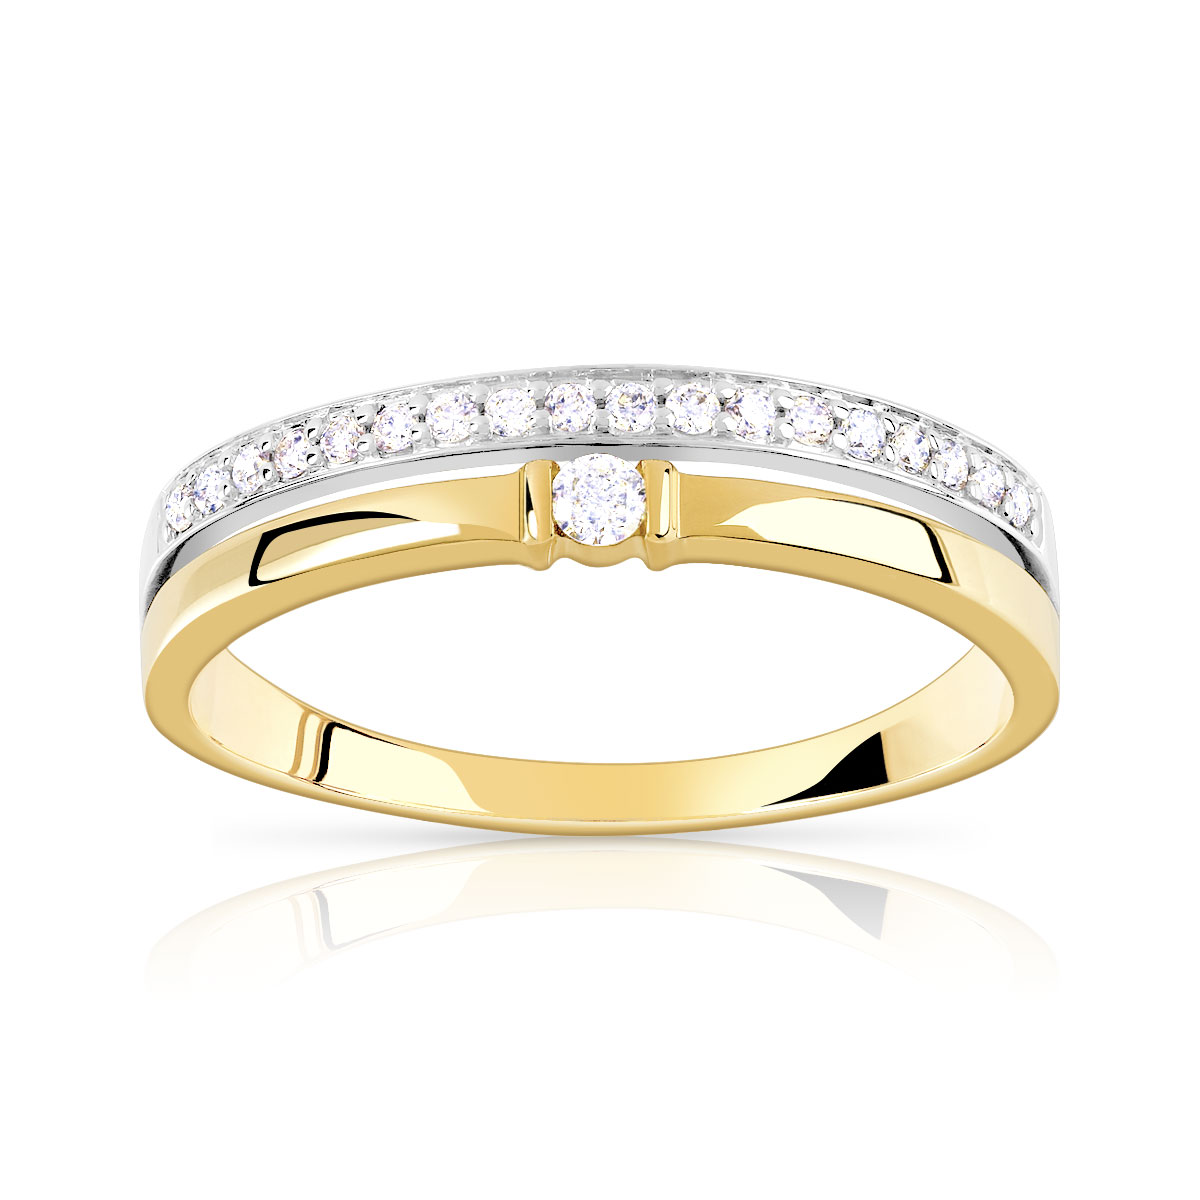 Bague alliance solitaire 2 ors 750 diamant - vue 1